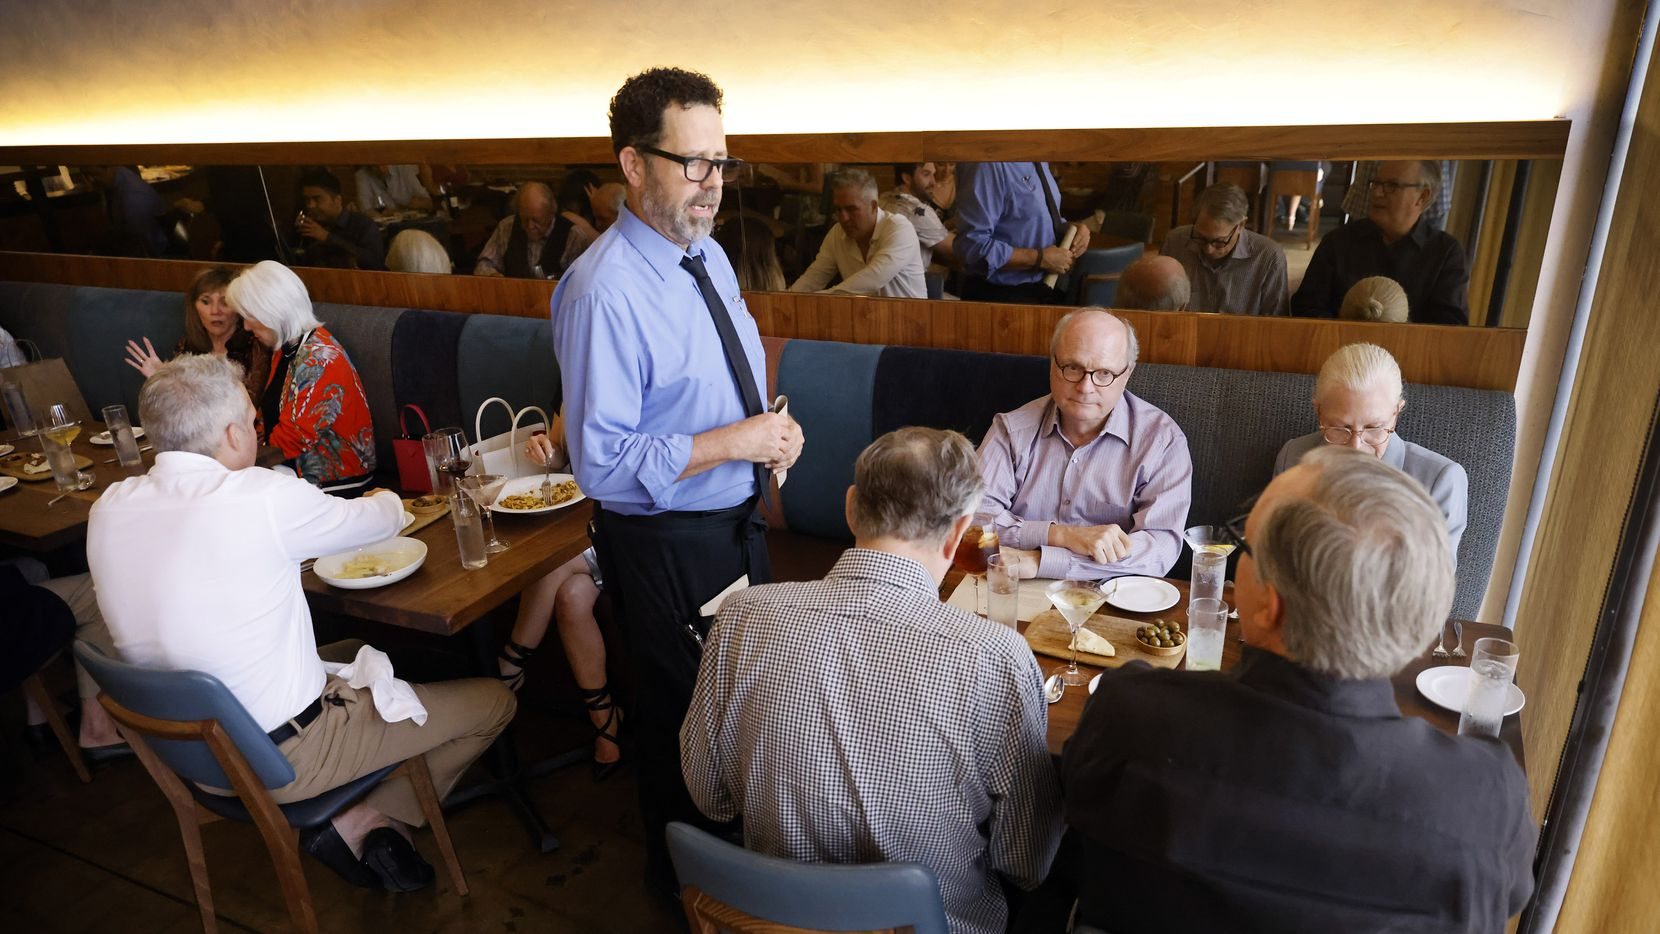 Server David Walsh waited on a table at the nearly full Nonna restaurant in Dallas on Friday evening, July 2.